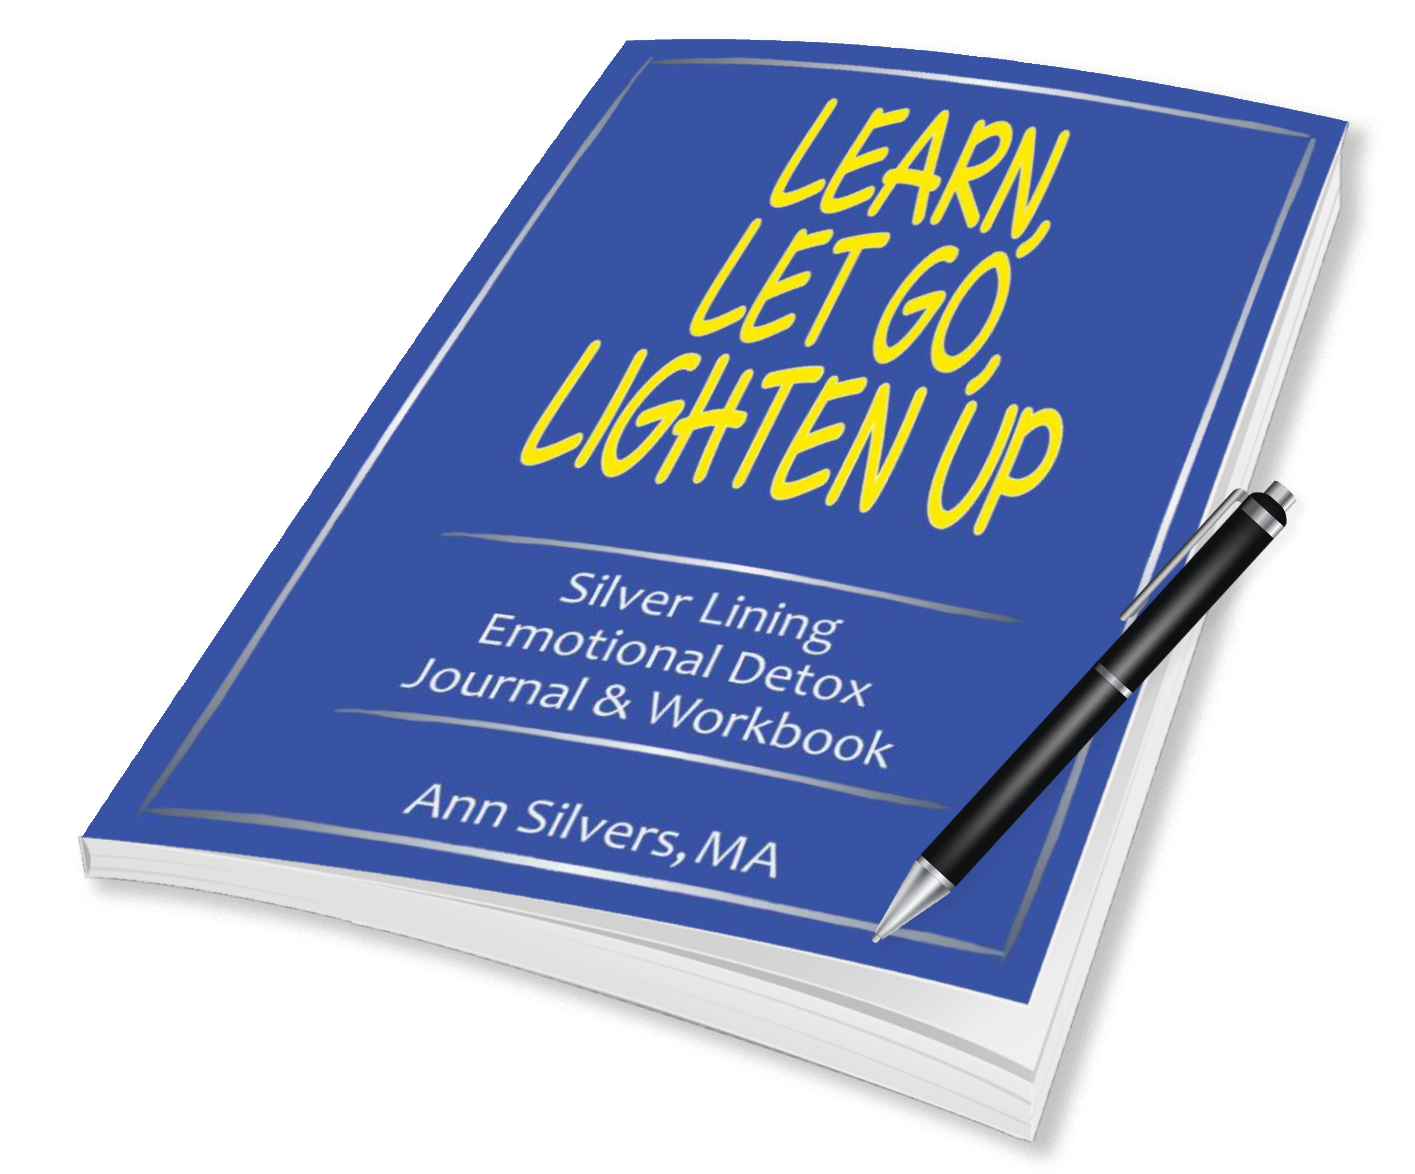 Learn, Let Go, Lighten Up: Silver Lining Emotional Detox Journal & Workbook, Journal prompts for writing down your thoughts and feelings